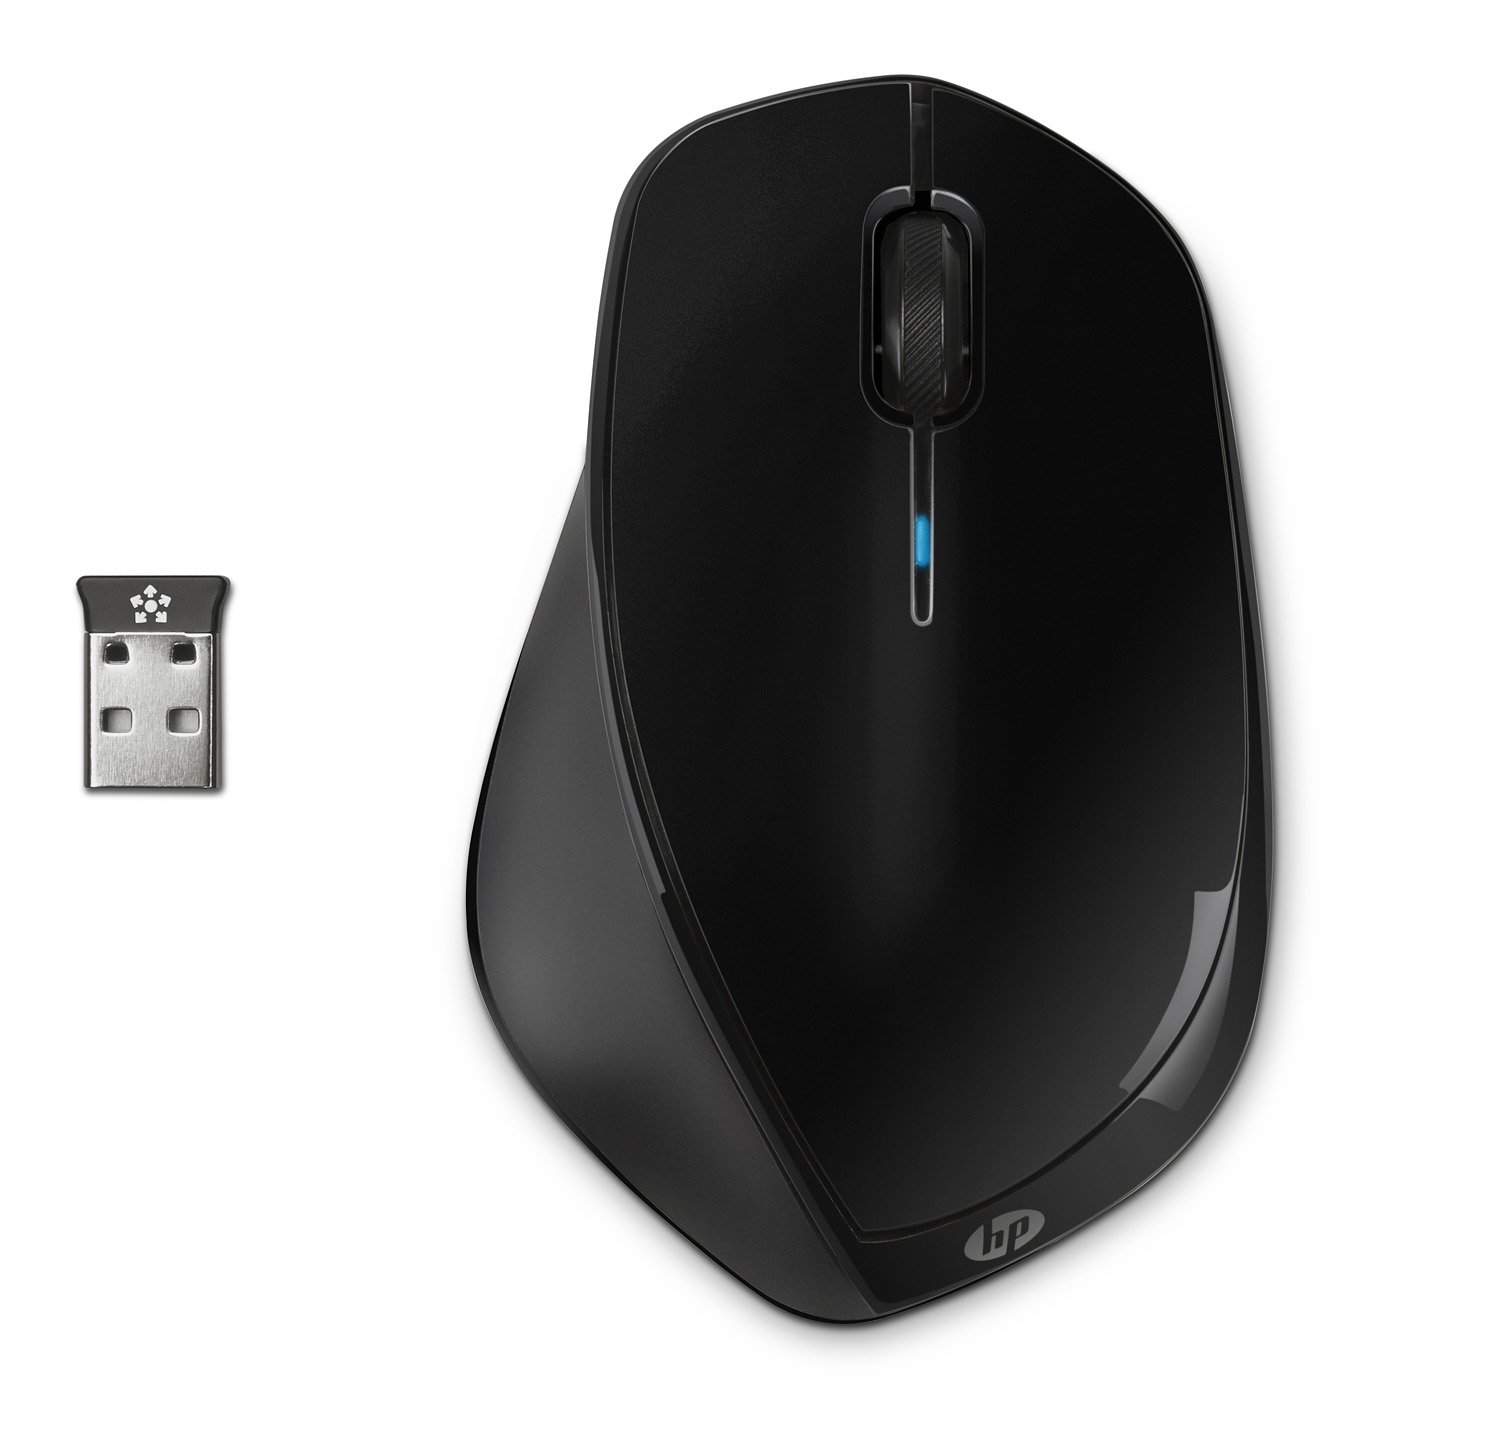 HP X4500 Wireless Mouse Black H2W26AA (Laser Sensor + Nano δέκτης + 30 μήνες αυτονομία!)